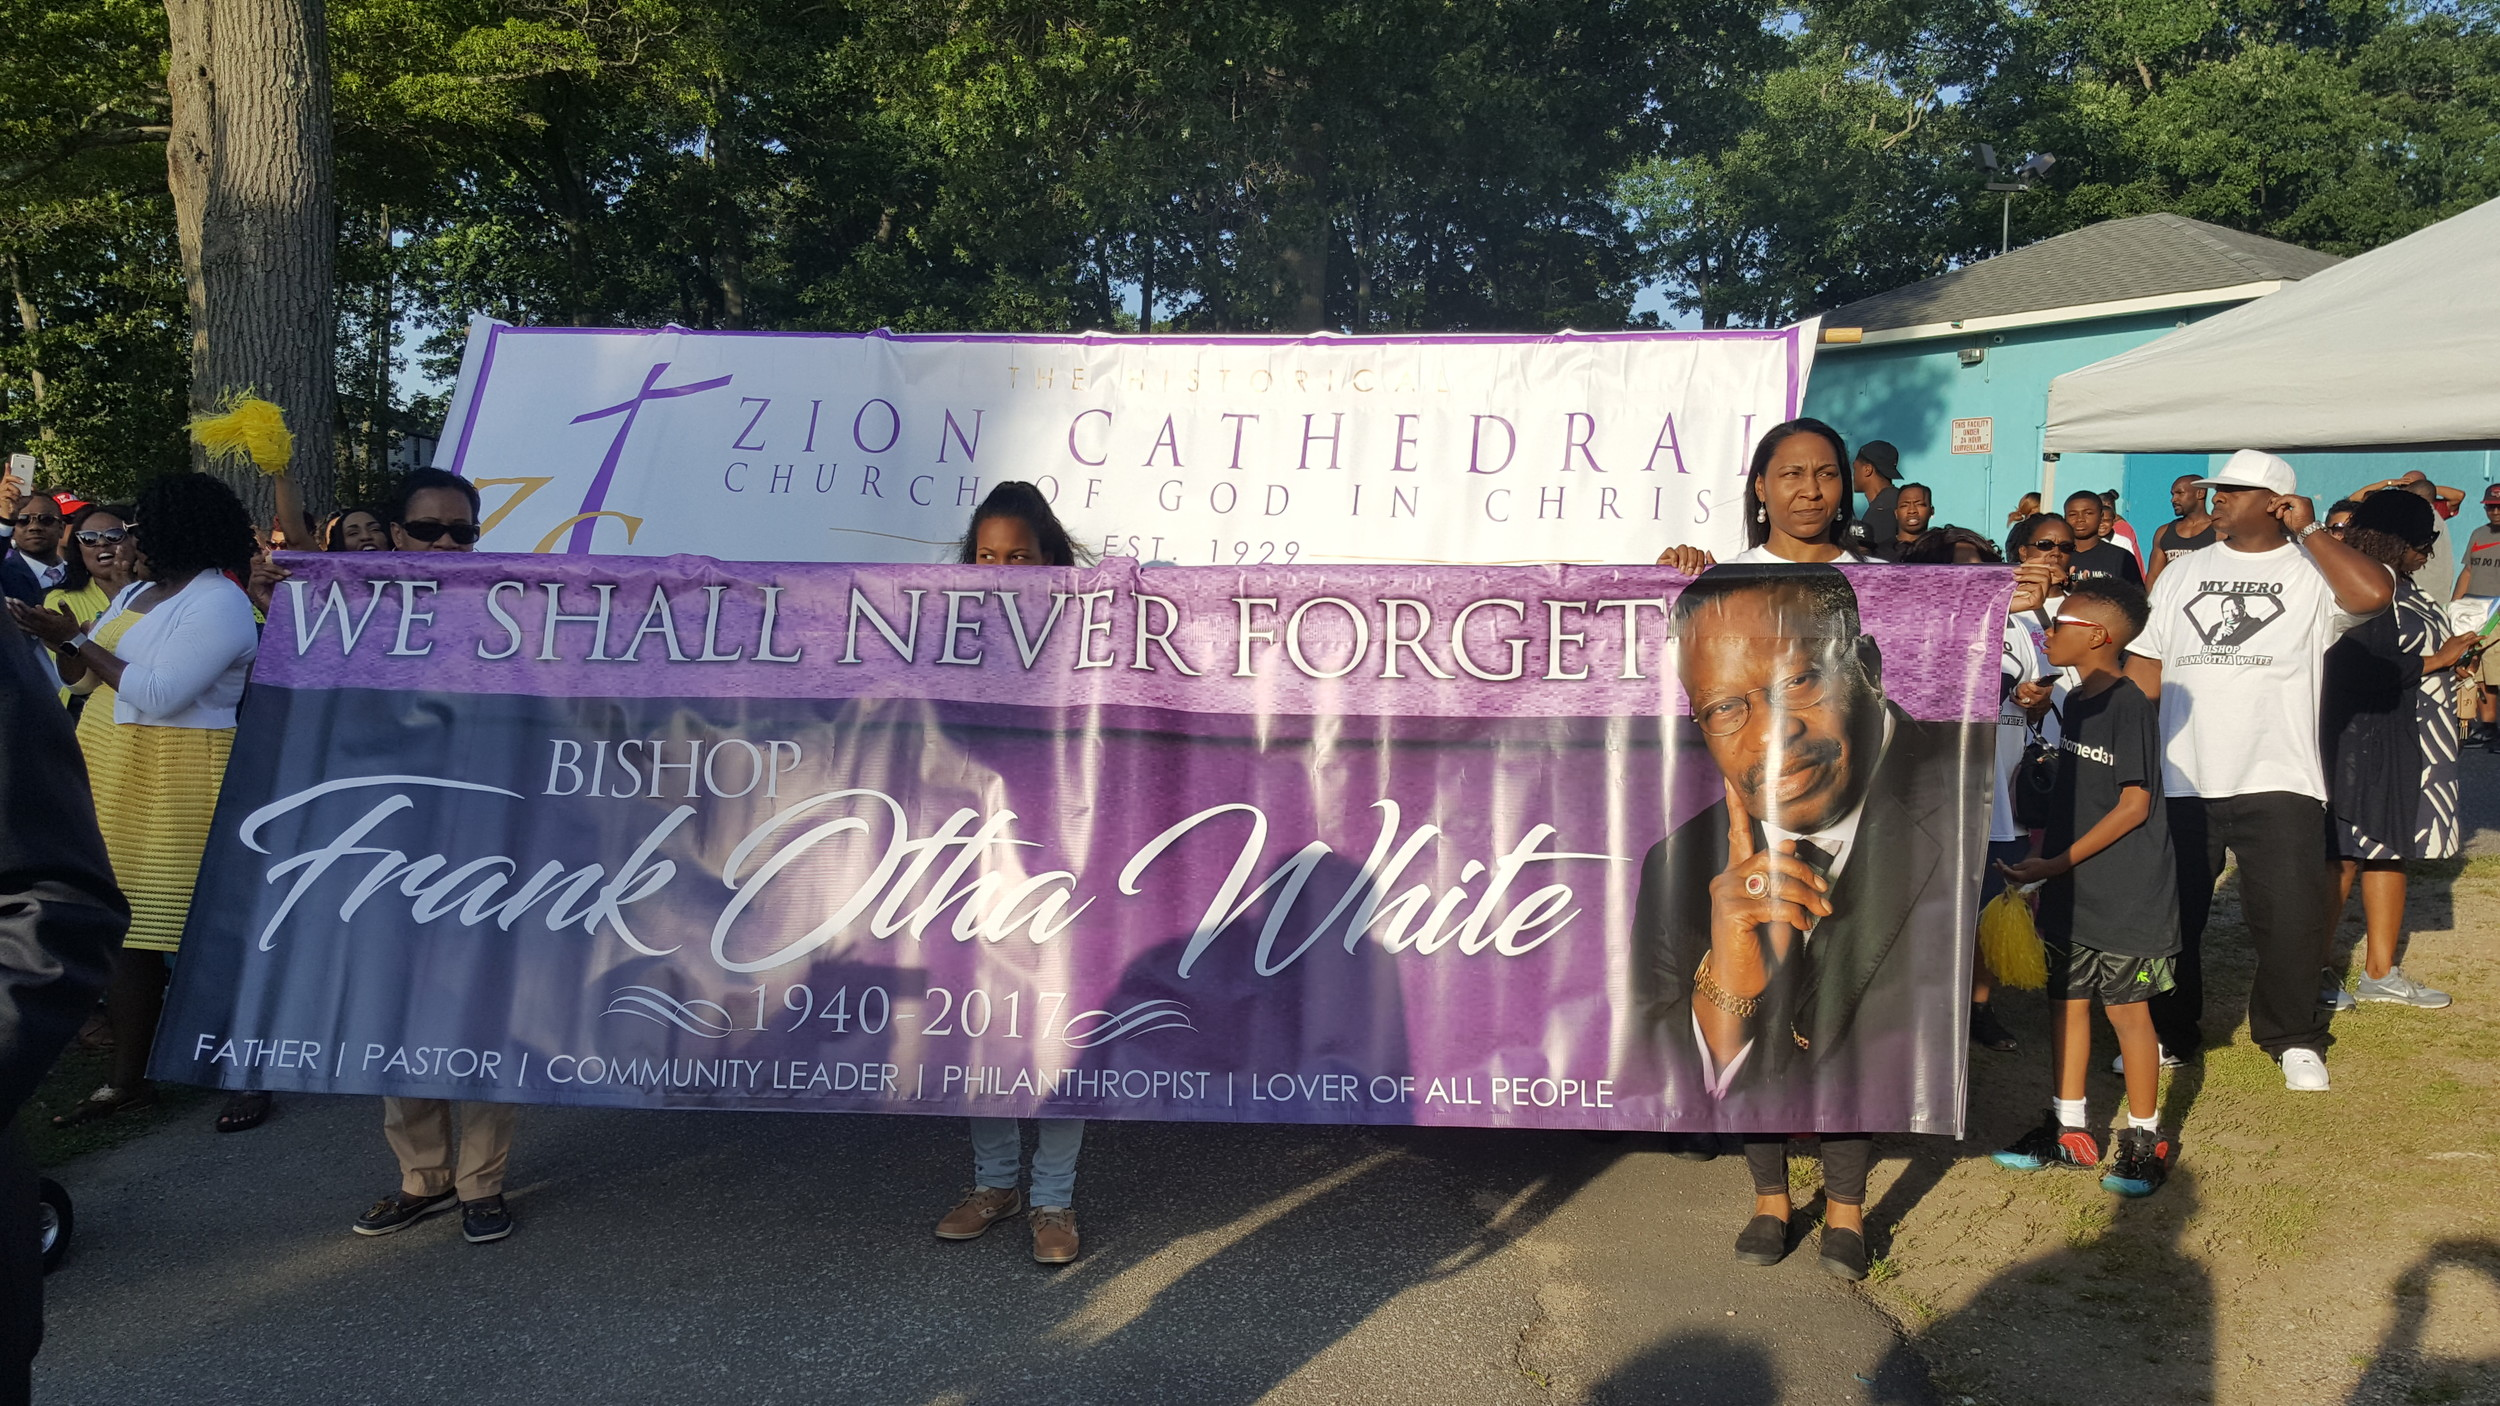 Members of the Zion Catherdral Church of God in Christ, along with members of the Cedarmore Corporation, waved multi-colored flags as they marched into the park on June 28.